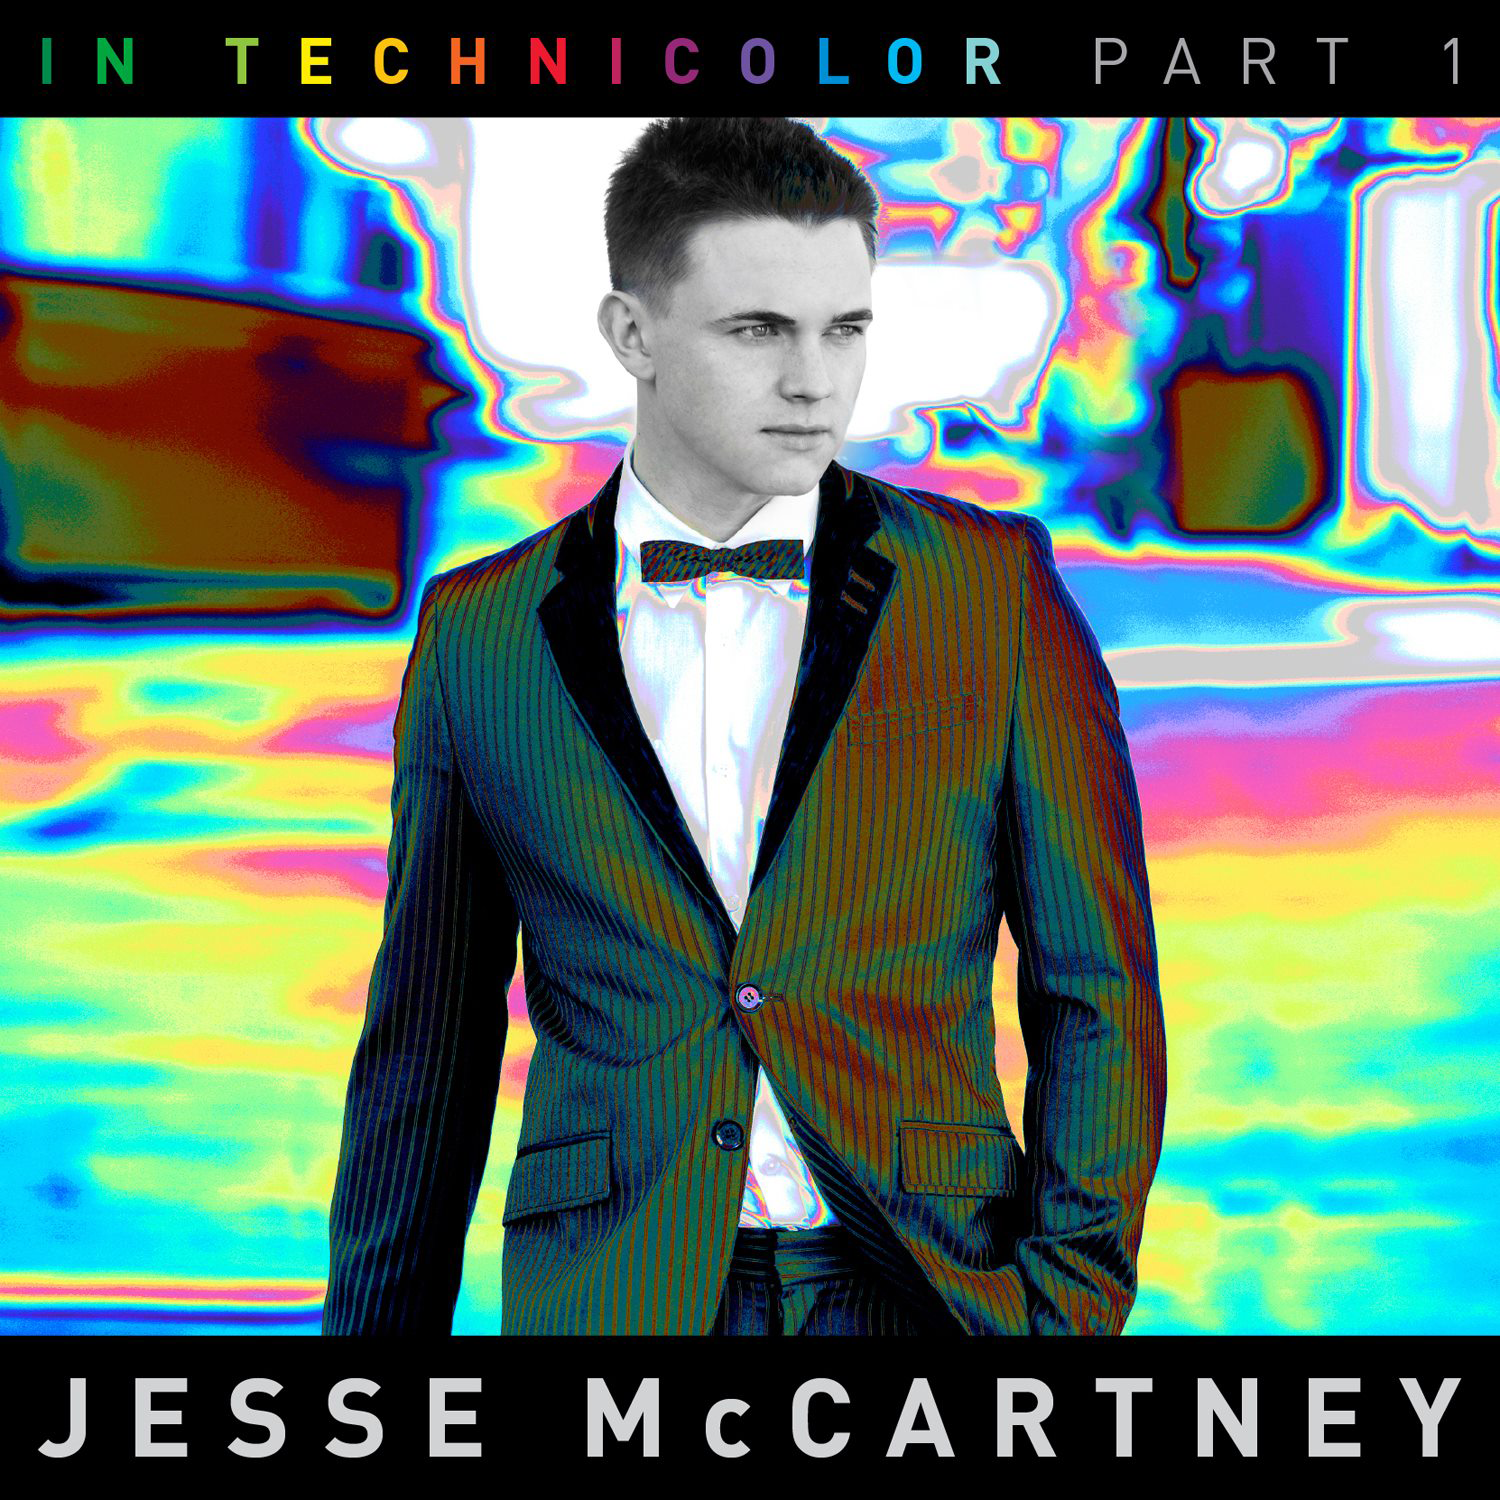 Jesse McCartney - In Technicolor, Pt. I